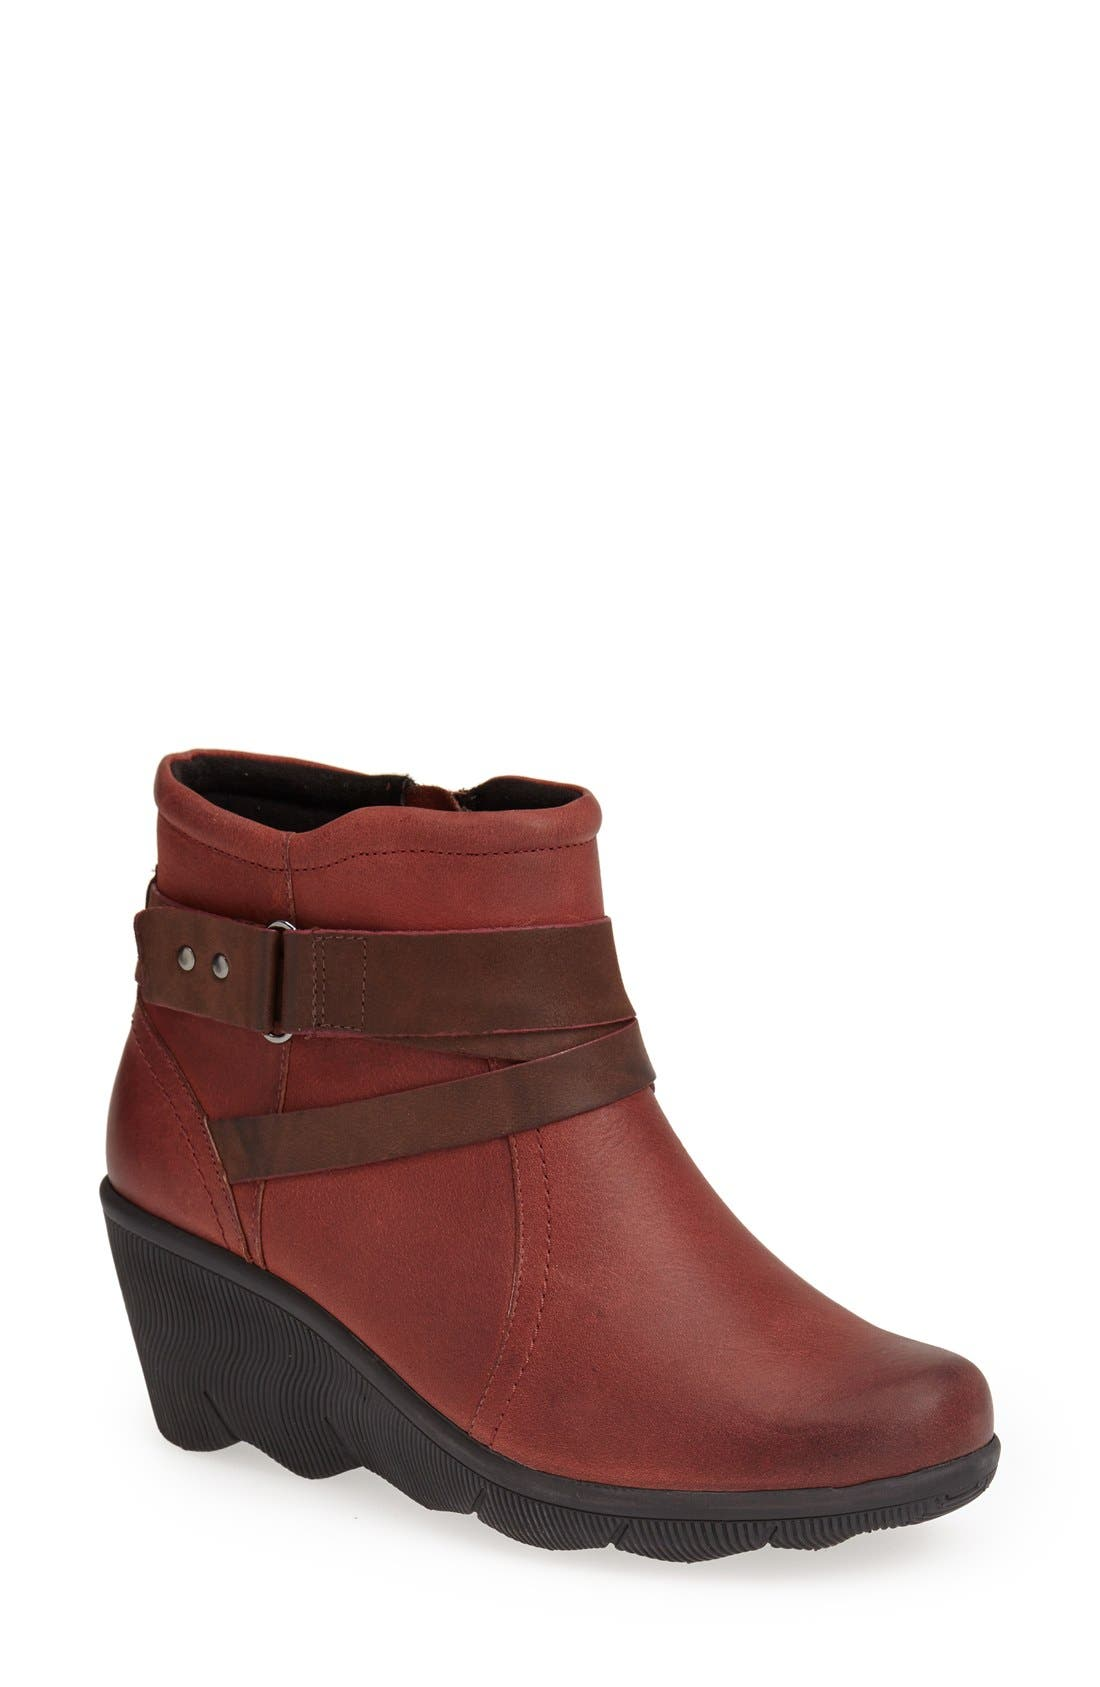 Alternate Image 1 Selected - Cobb Hill 'REVhex' Wedge Boot (Women)